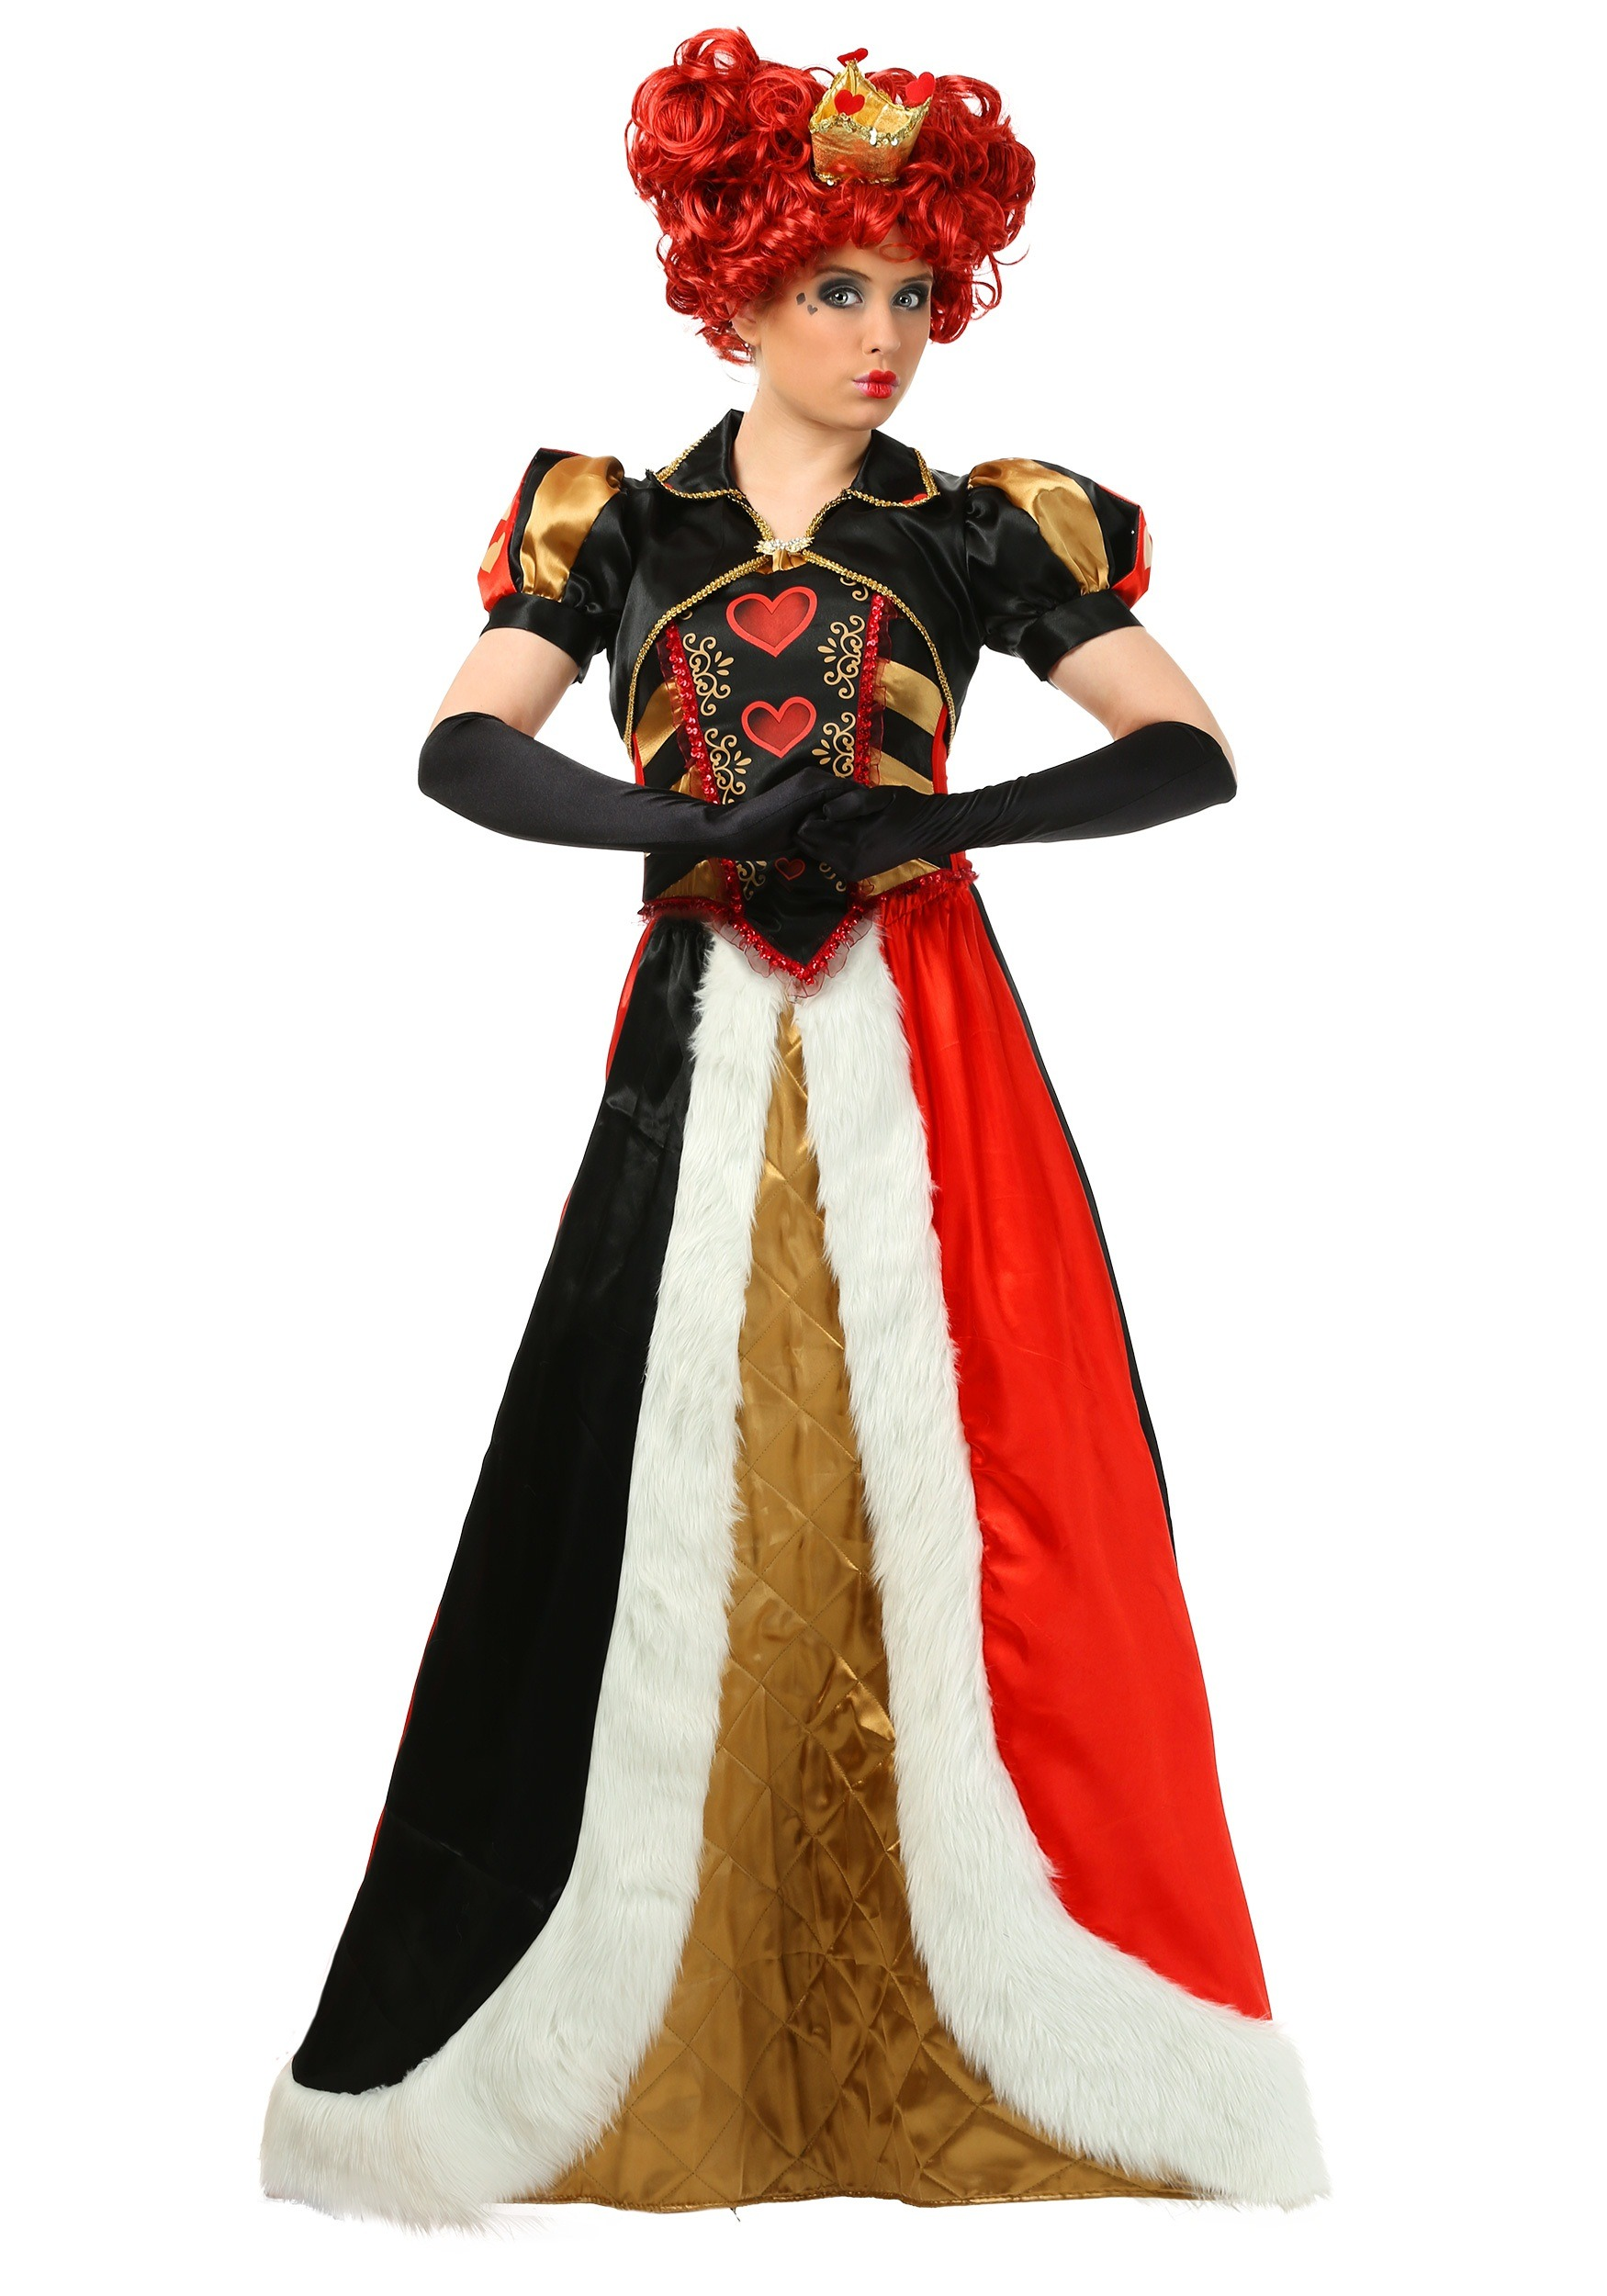 women 39 s plus size elite queen of hearts costume 1x 2x 3x 4x. Black Bedroom Furniture Sets. Home Design Ideas